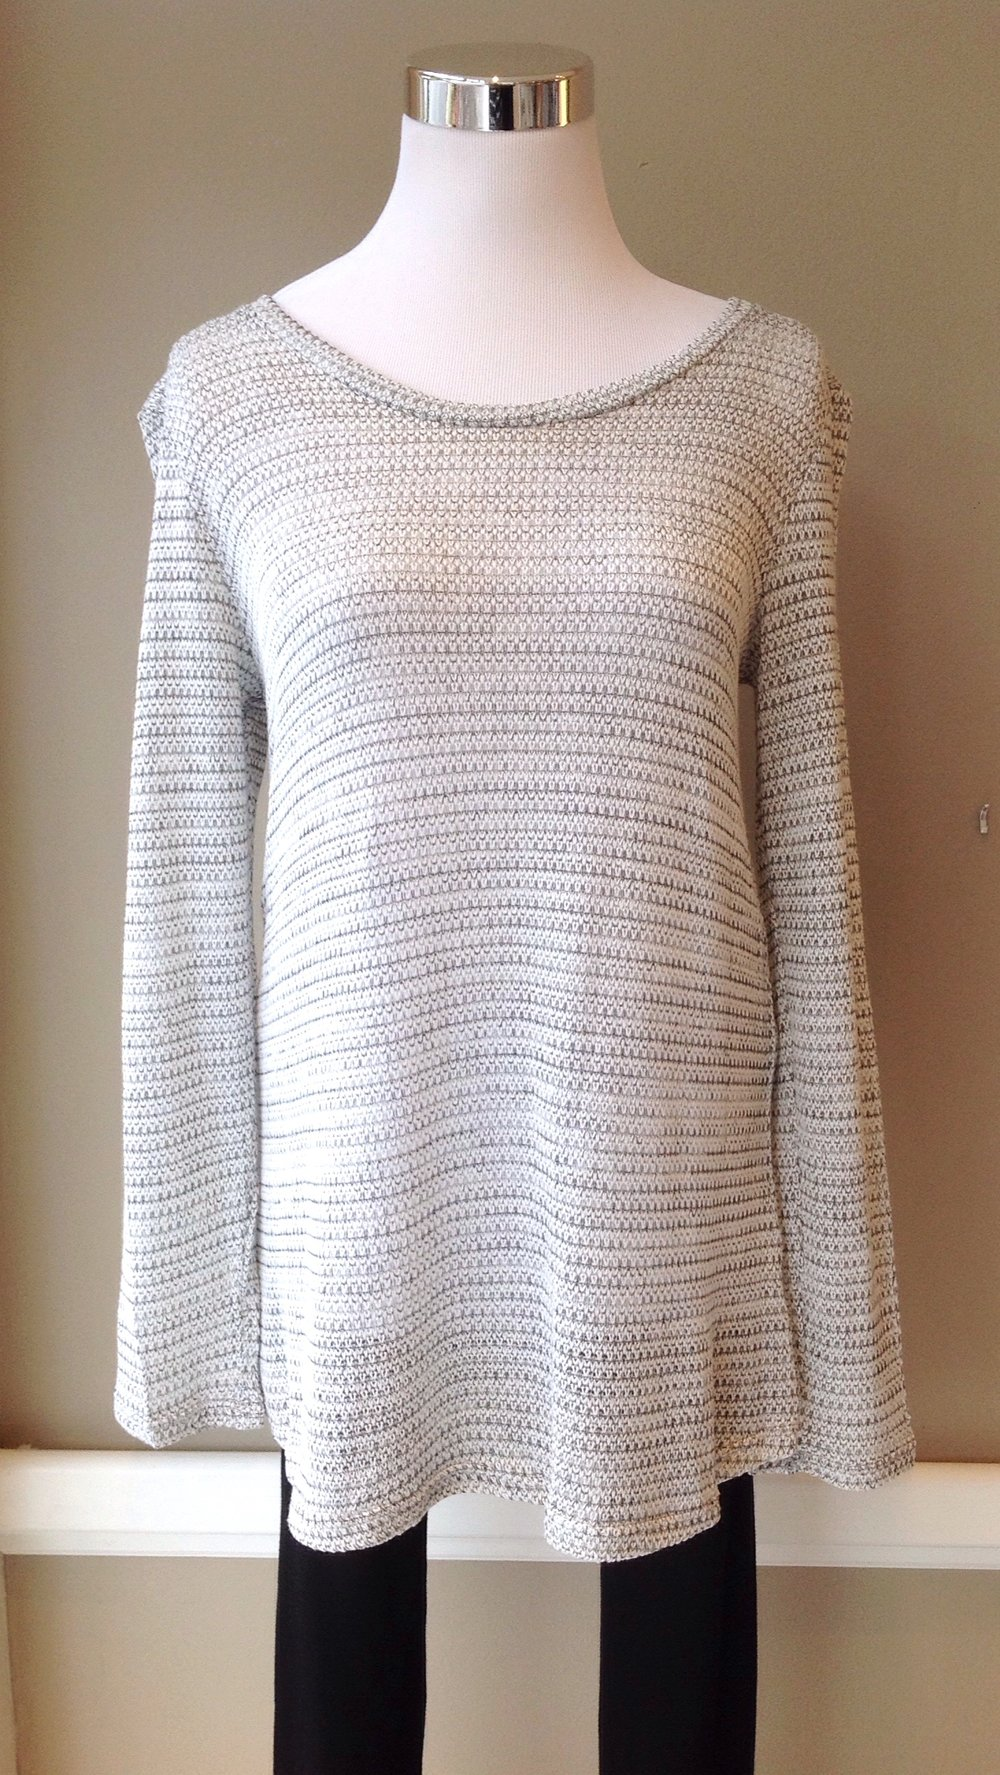 Space stripe lightweight sweater in ivory/heather grey, $34